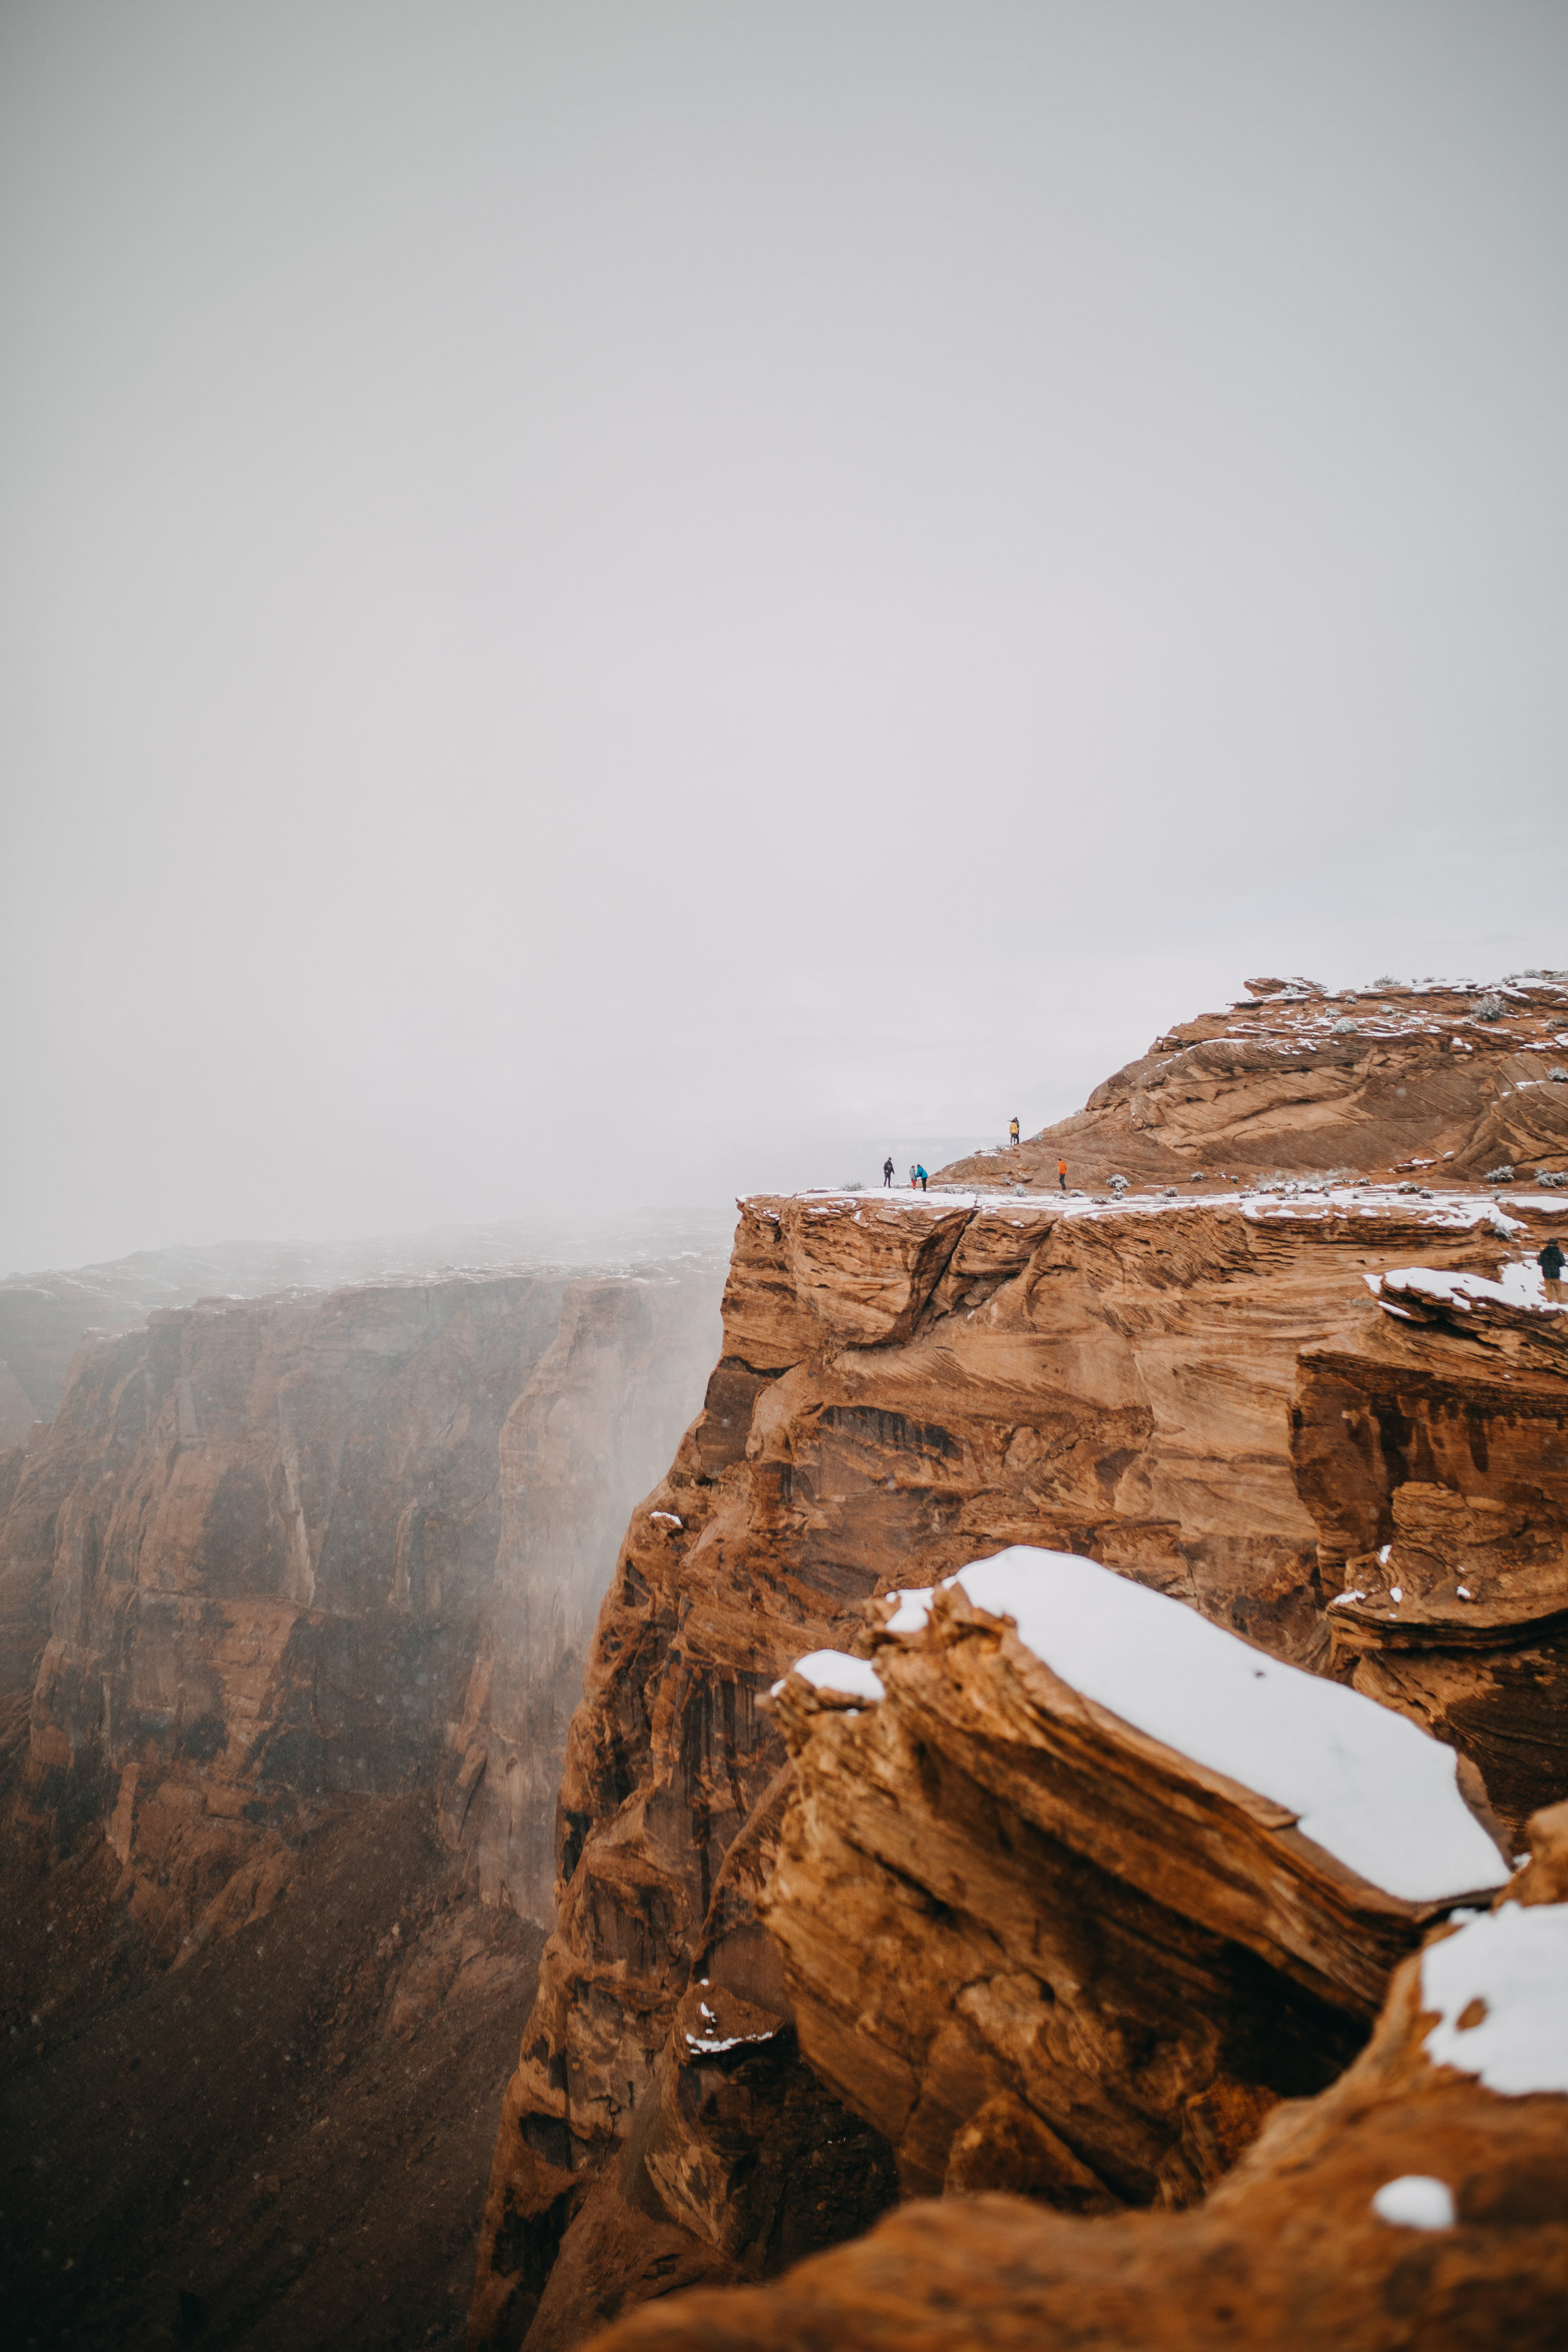 Winter at Horseshoe Bend